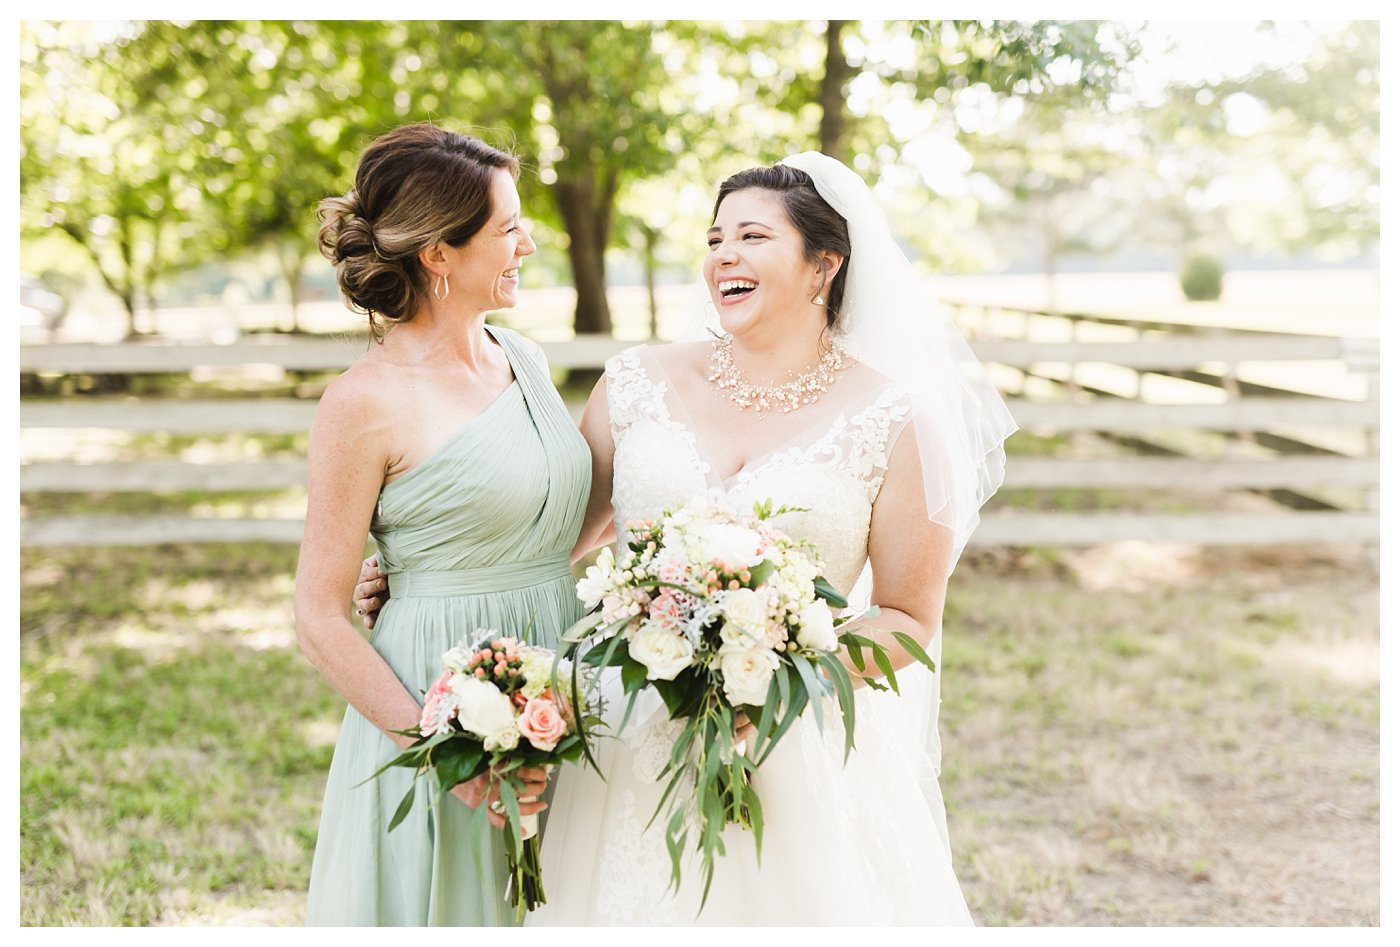 Historic_Hope_Plantation_Wedding_Photography_Sage_Summer_Outdoor_Windsor_NC_0015.jpg